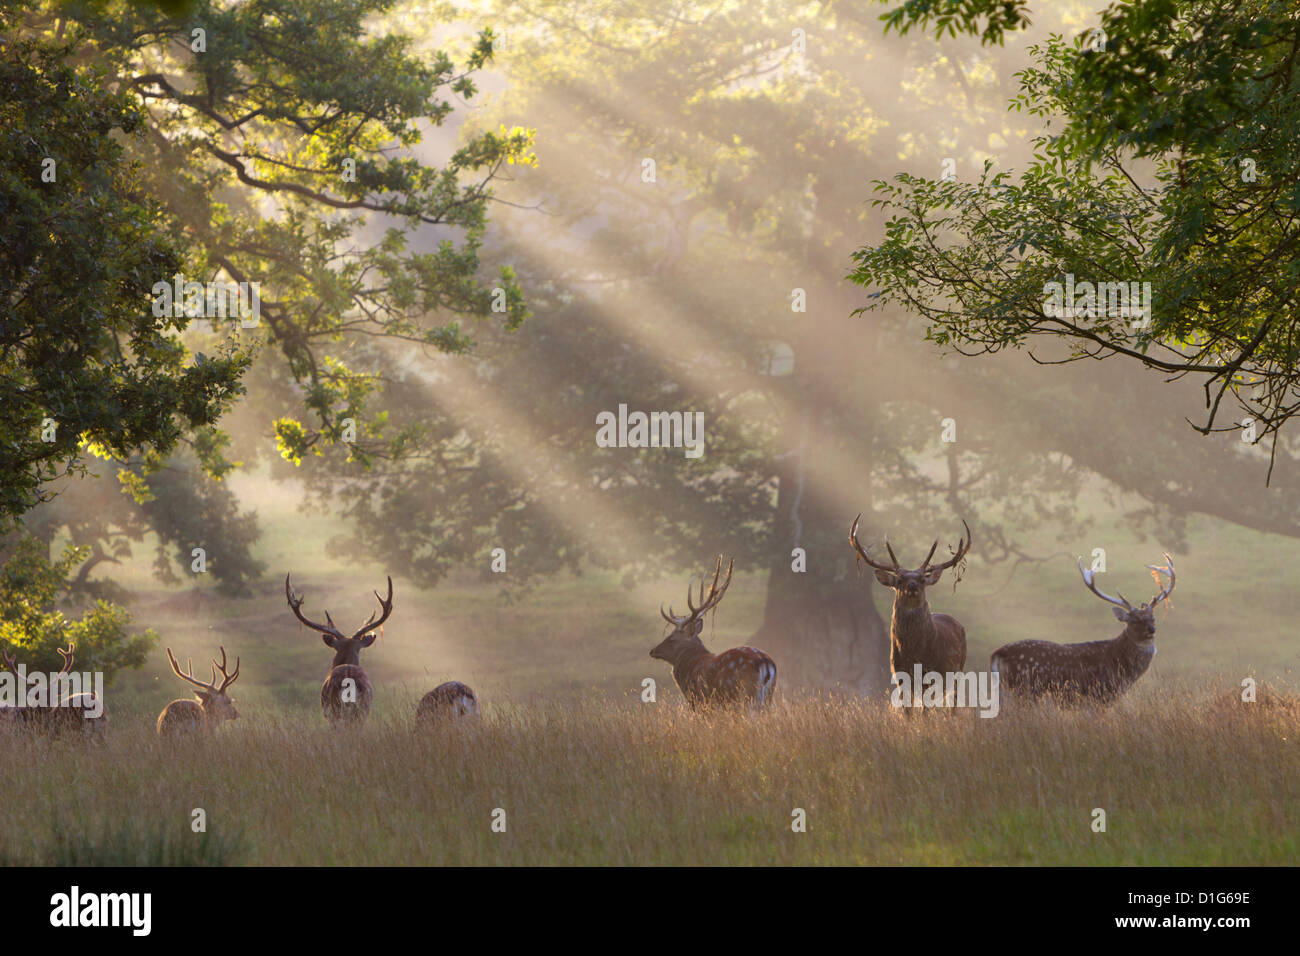 Deer in morning mist, Woburn Abbey Park, Woburn, Bedfordshire, England, United Kingdom, Europe - Stock Image